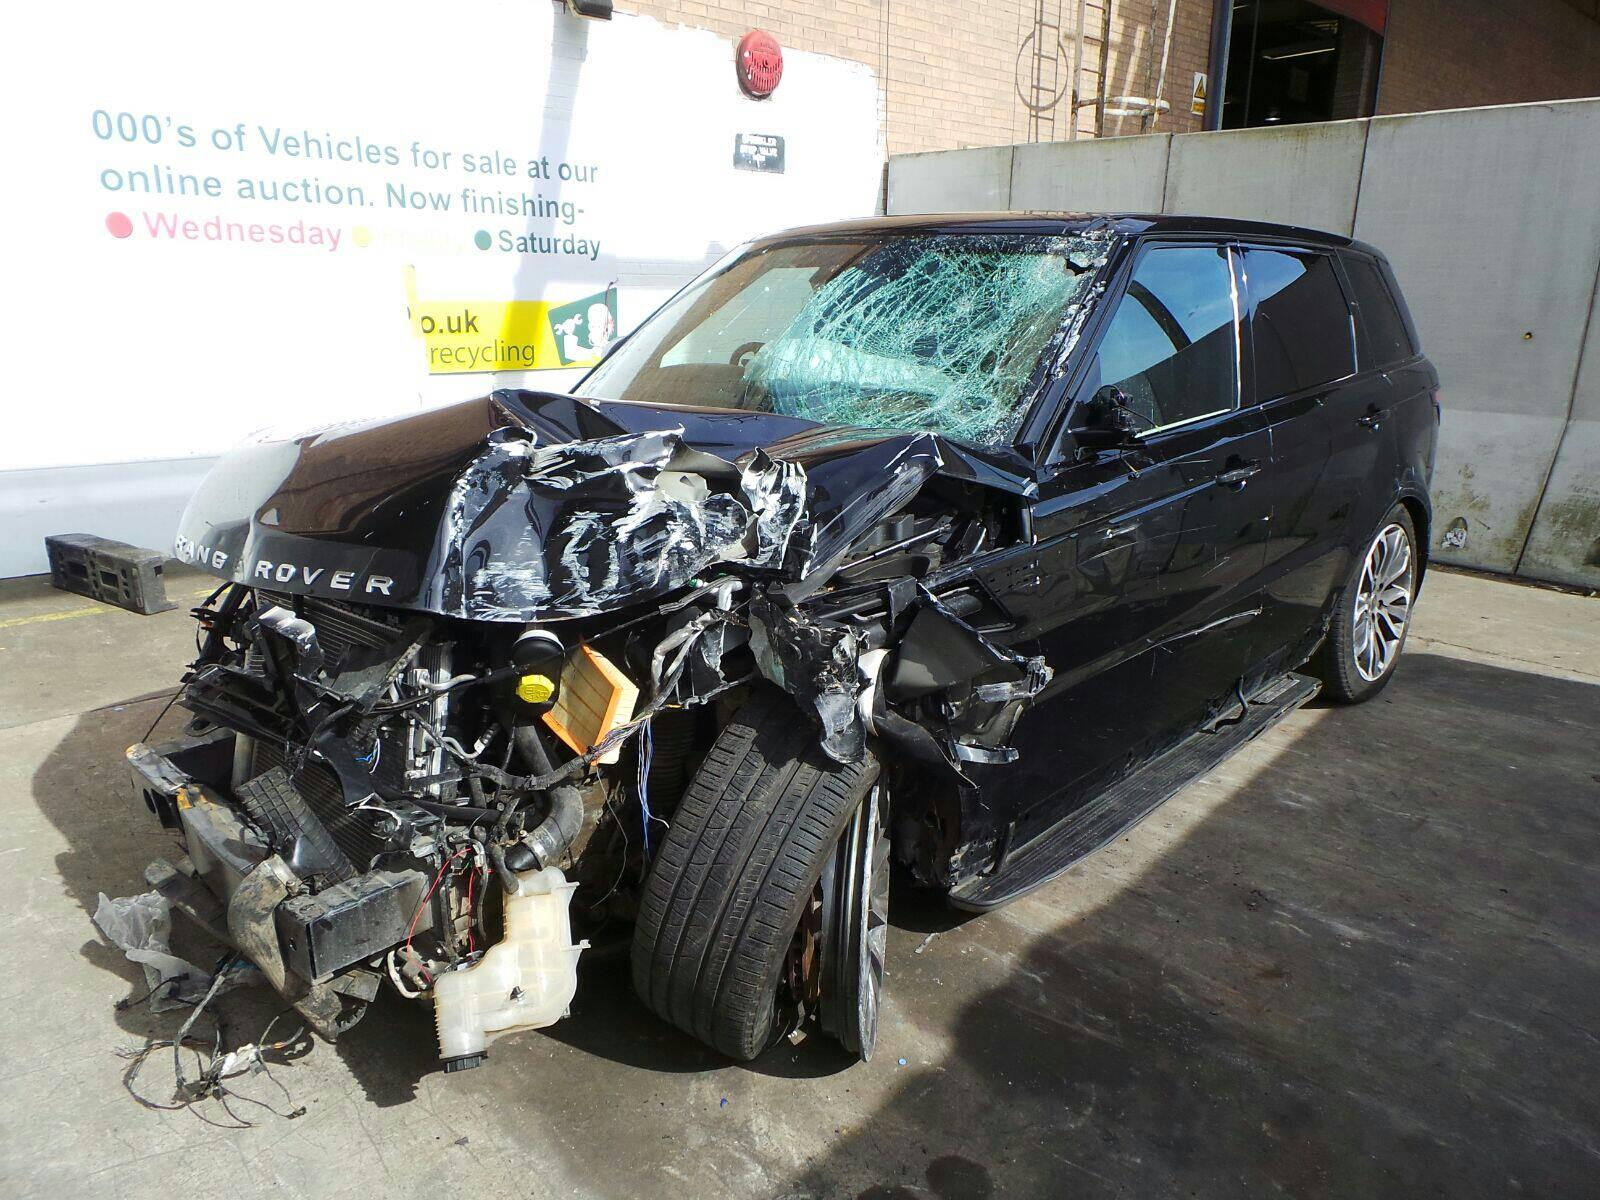 automatic used details hills hand parts ltd diesel rangeroversport recycling sport breakers landrover range vehicle salvage second car rover online land